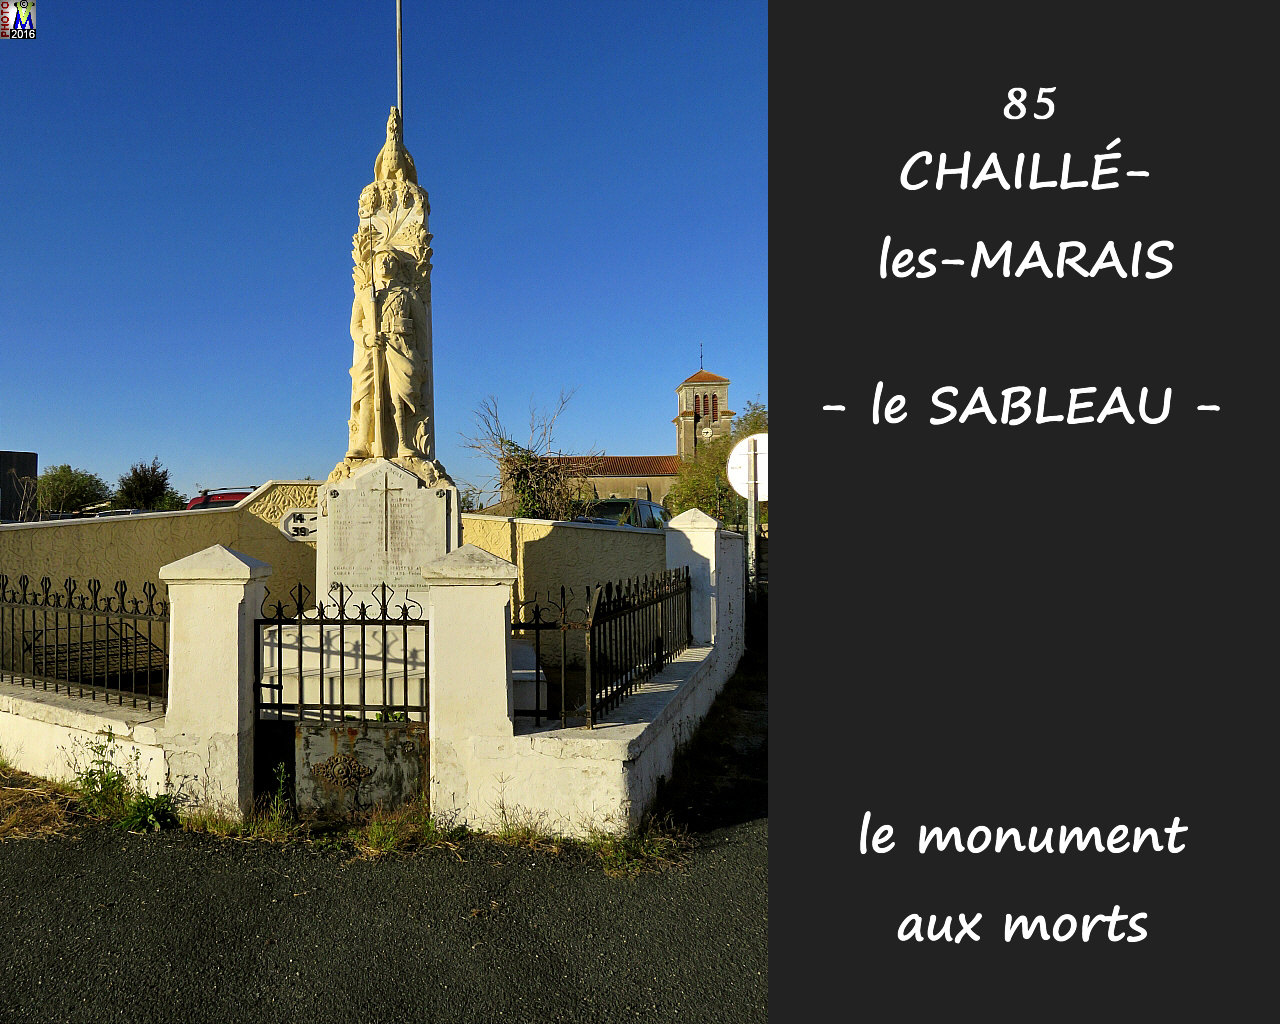 85CHAILLE-MARAISzSABLEAU_morts_100.jpg